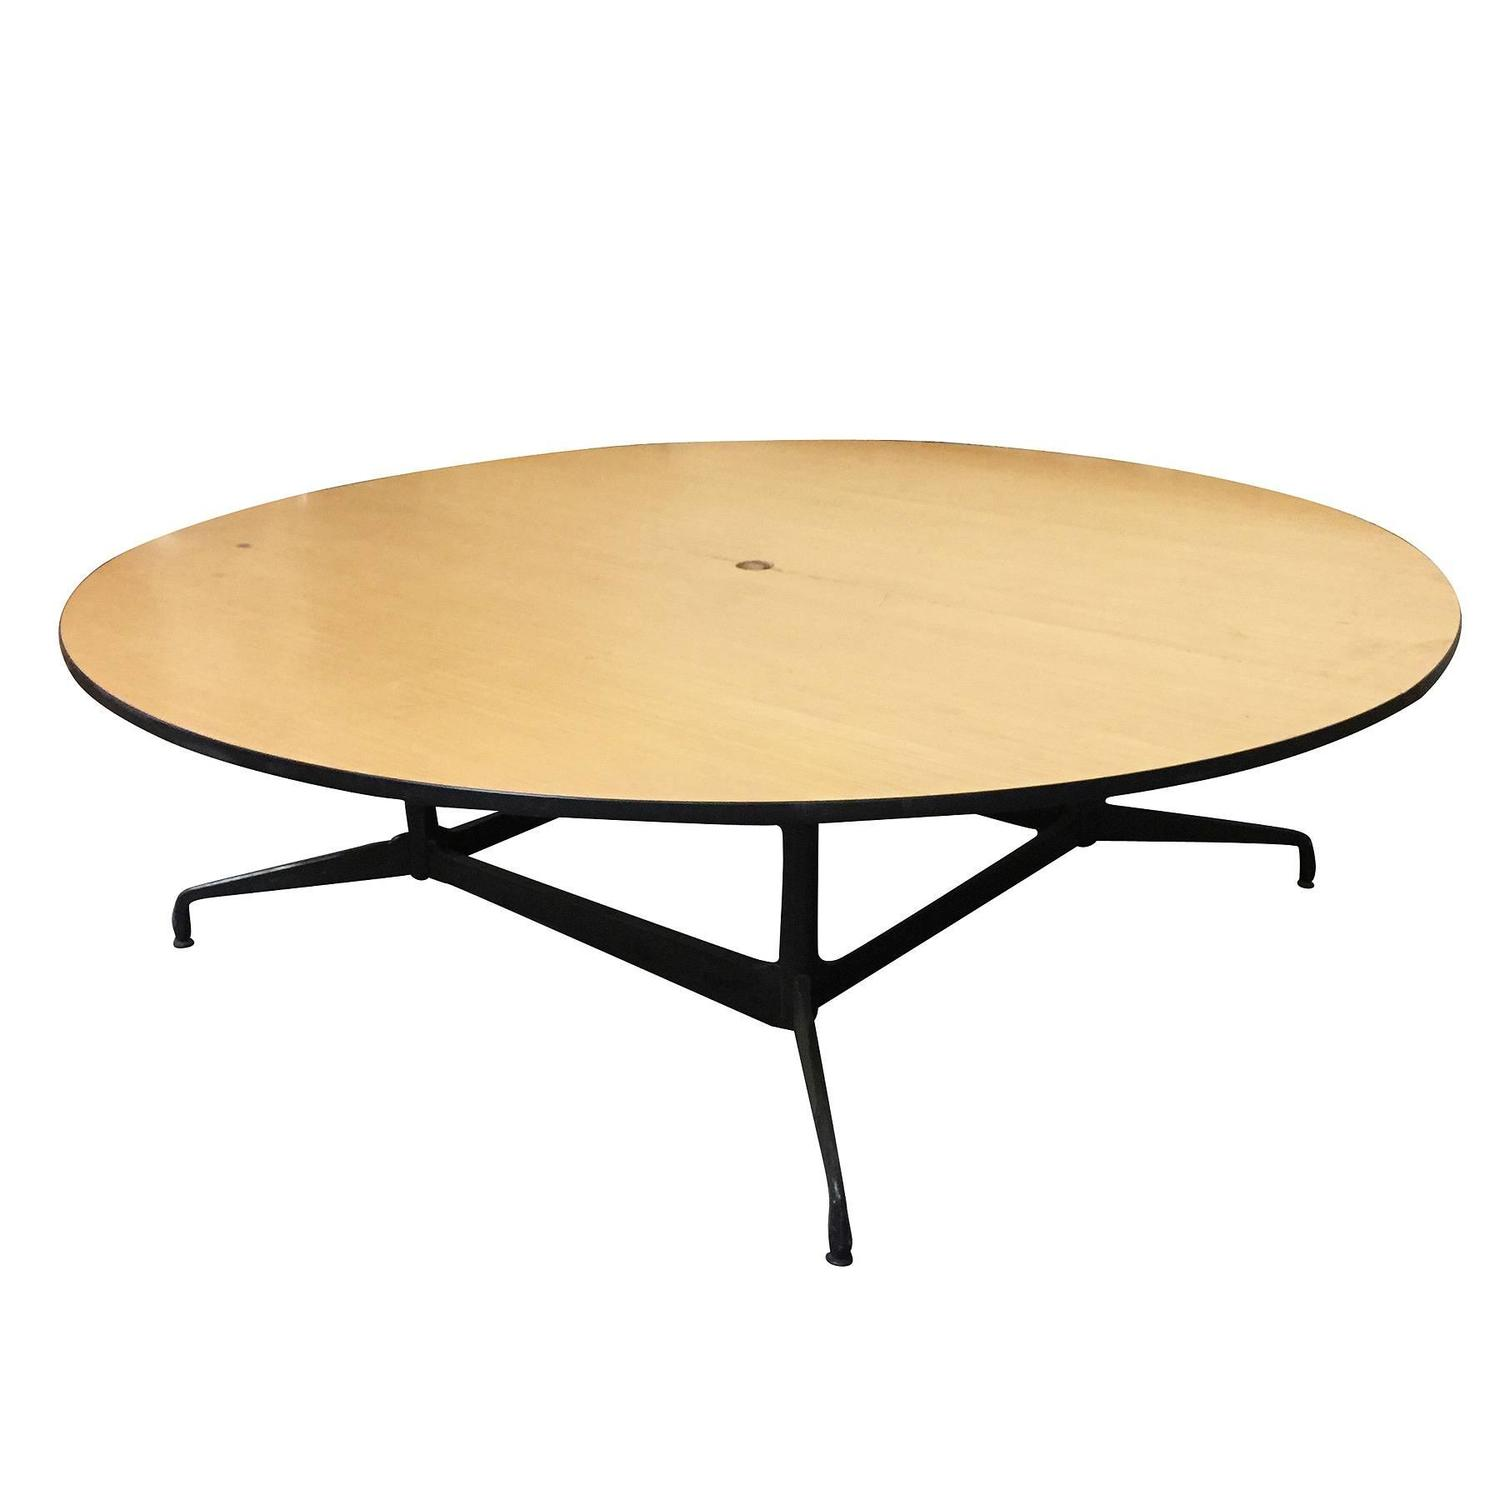 Charles and Ray Eames Tables 49 For Sale at 1stdibs